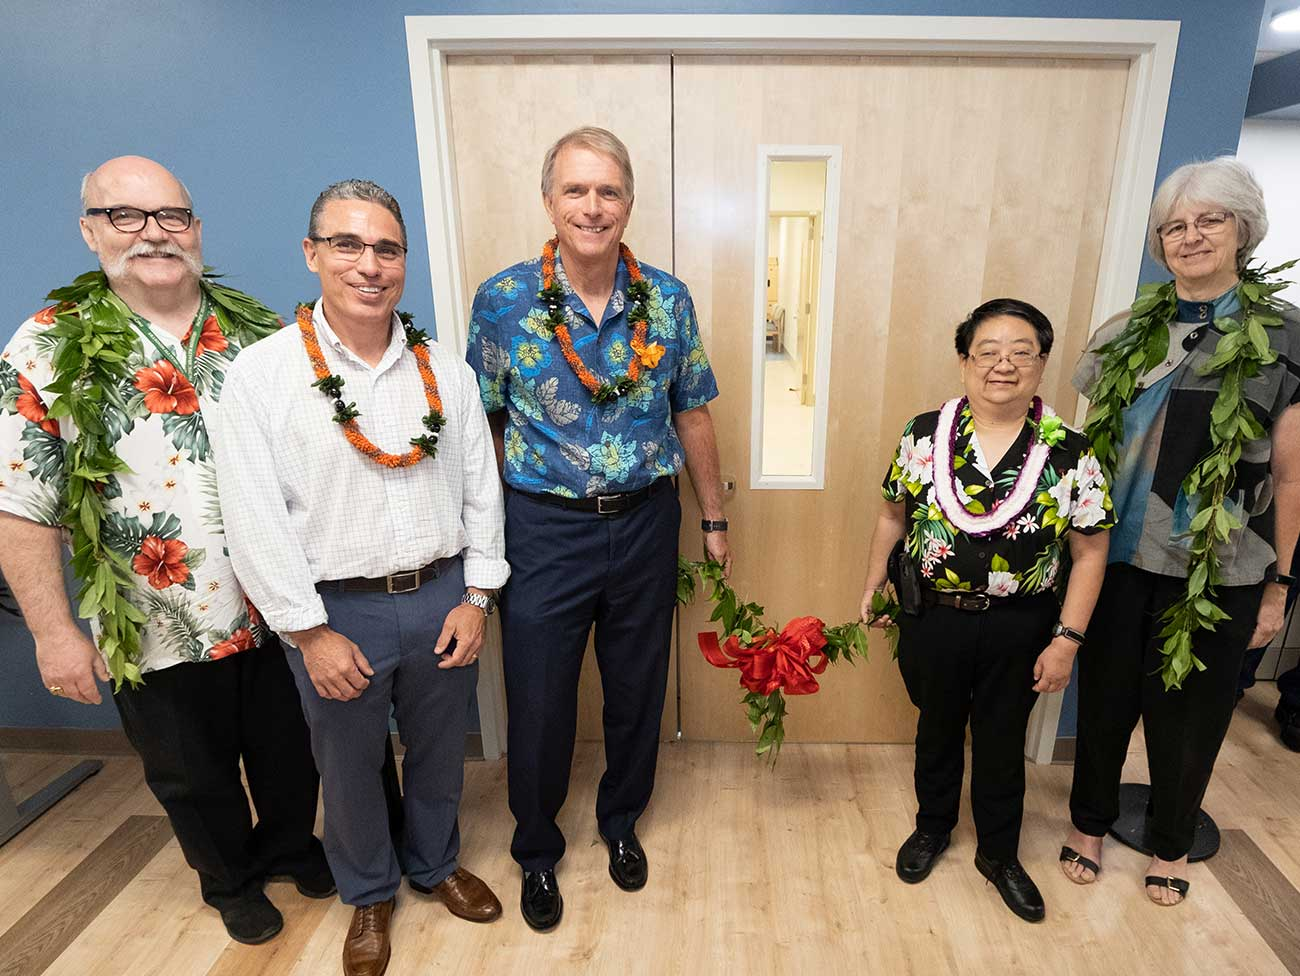 A group of people in Hawaiian shirts at a ribbon cutting ceremony.